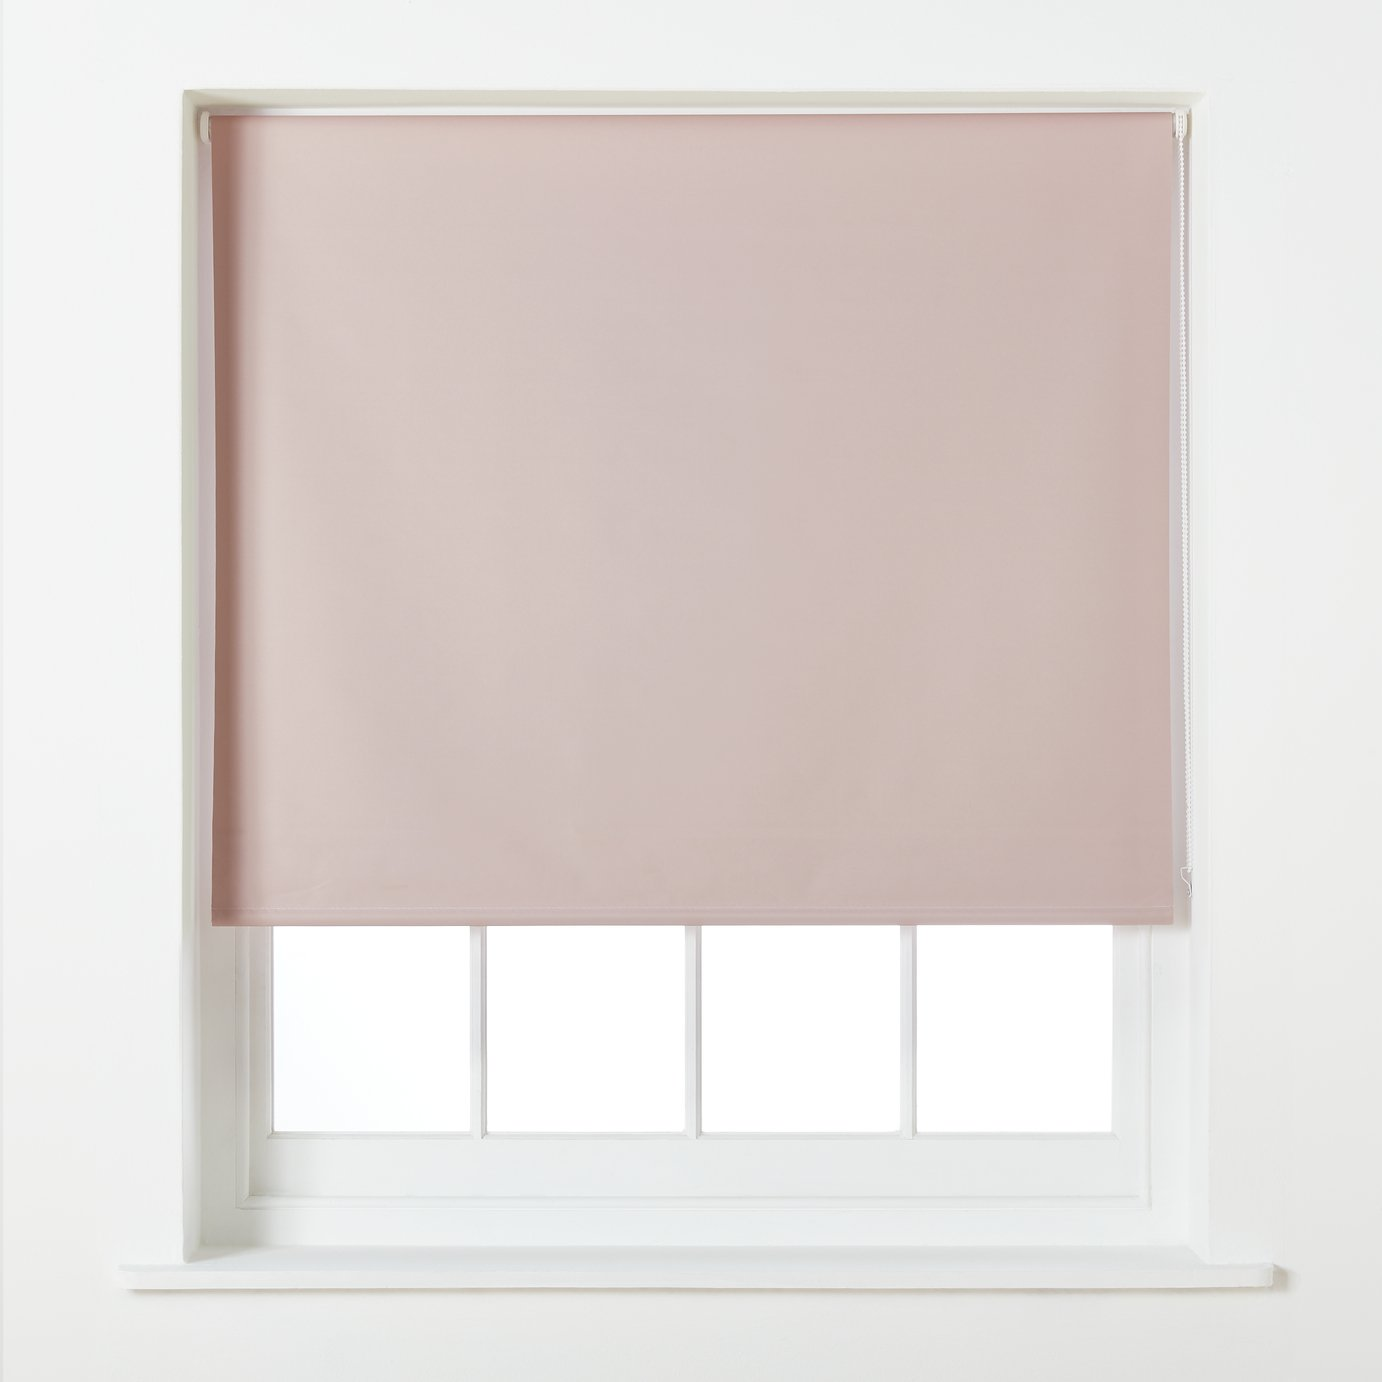 Argos Home Blackout Roller Blind - 4ft - Blush